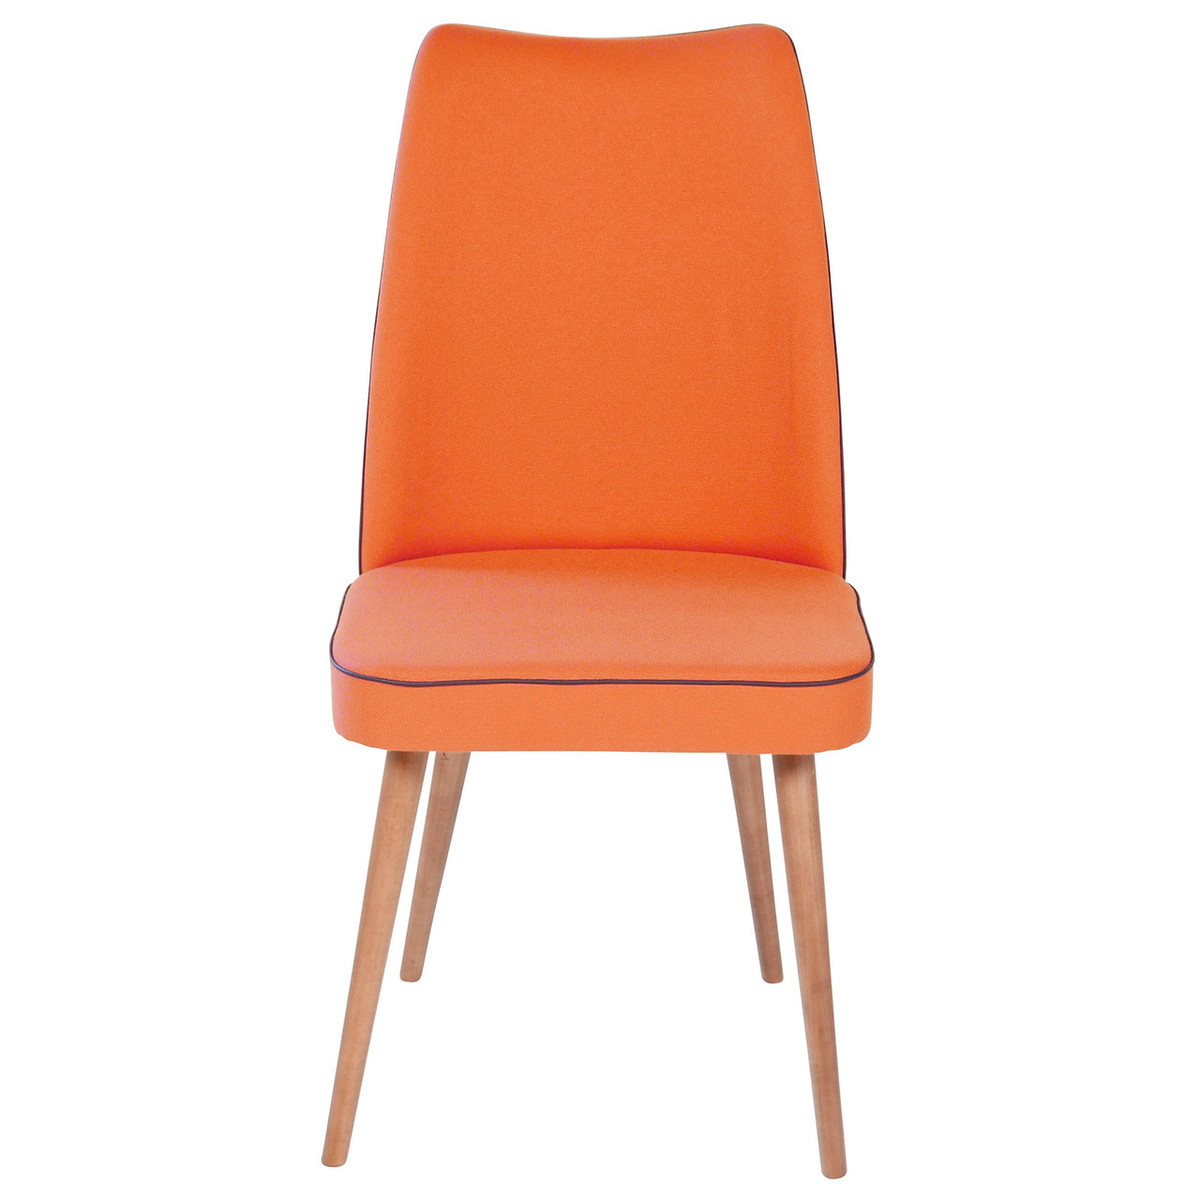 Orange Mid Century Modern Chair Mid Century Modern Upholstered Dining Chair Orange With